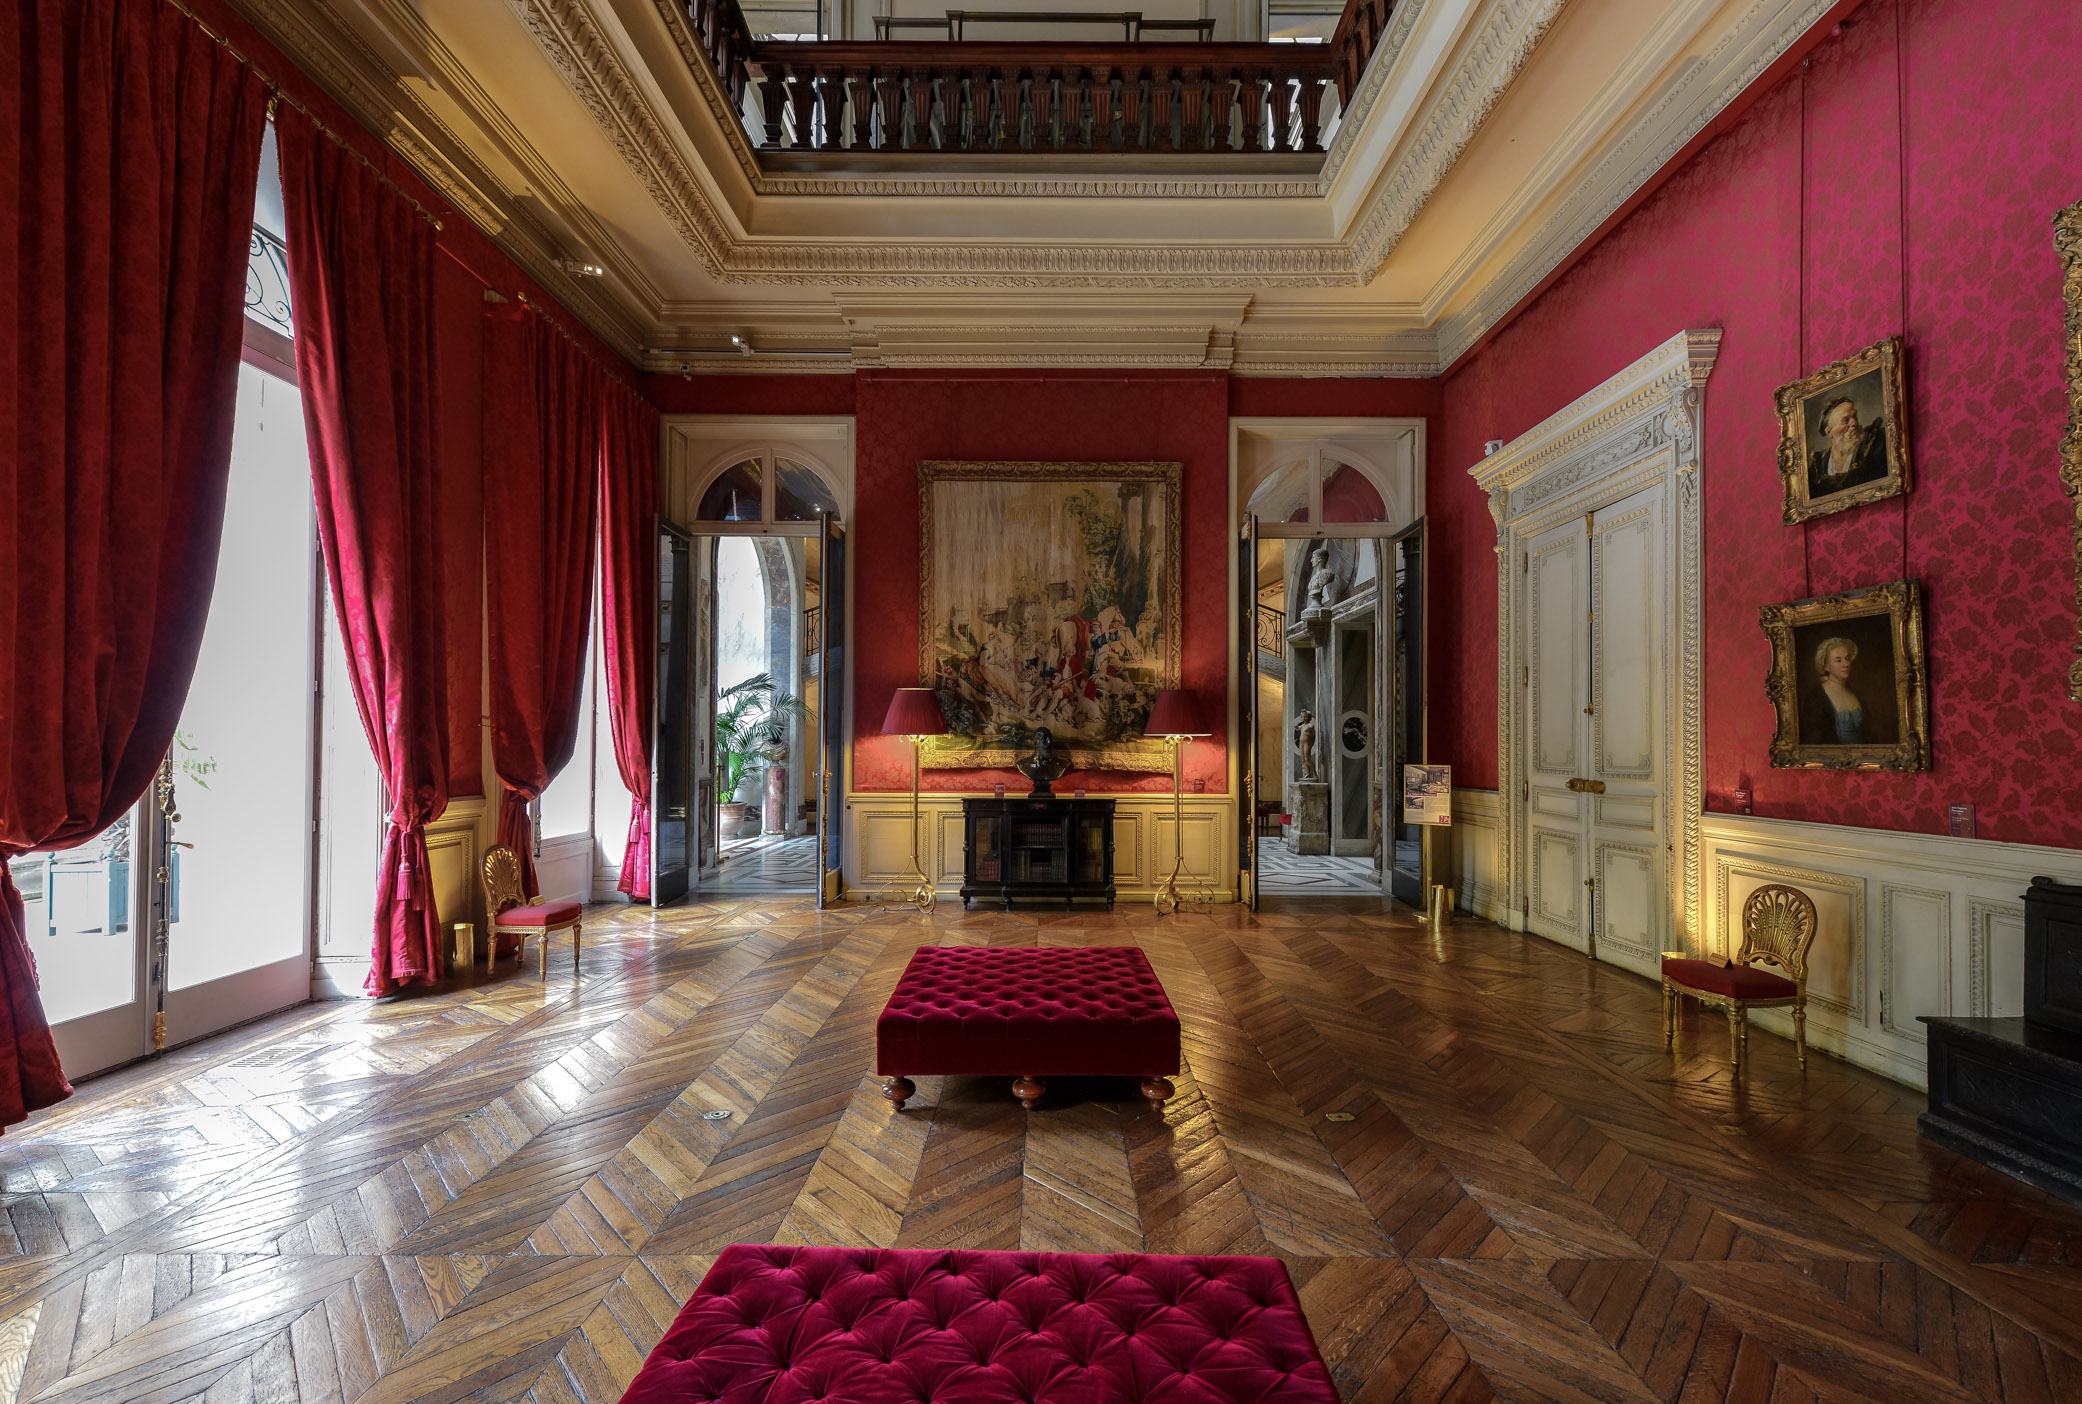 Jacquemart andr museum one of the most elegant museum in for Le salon de musique